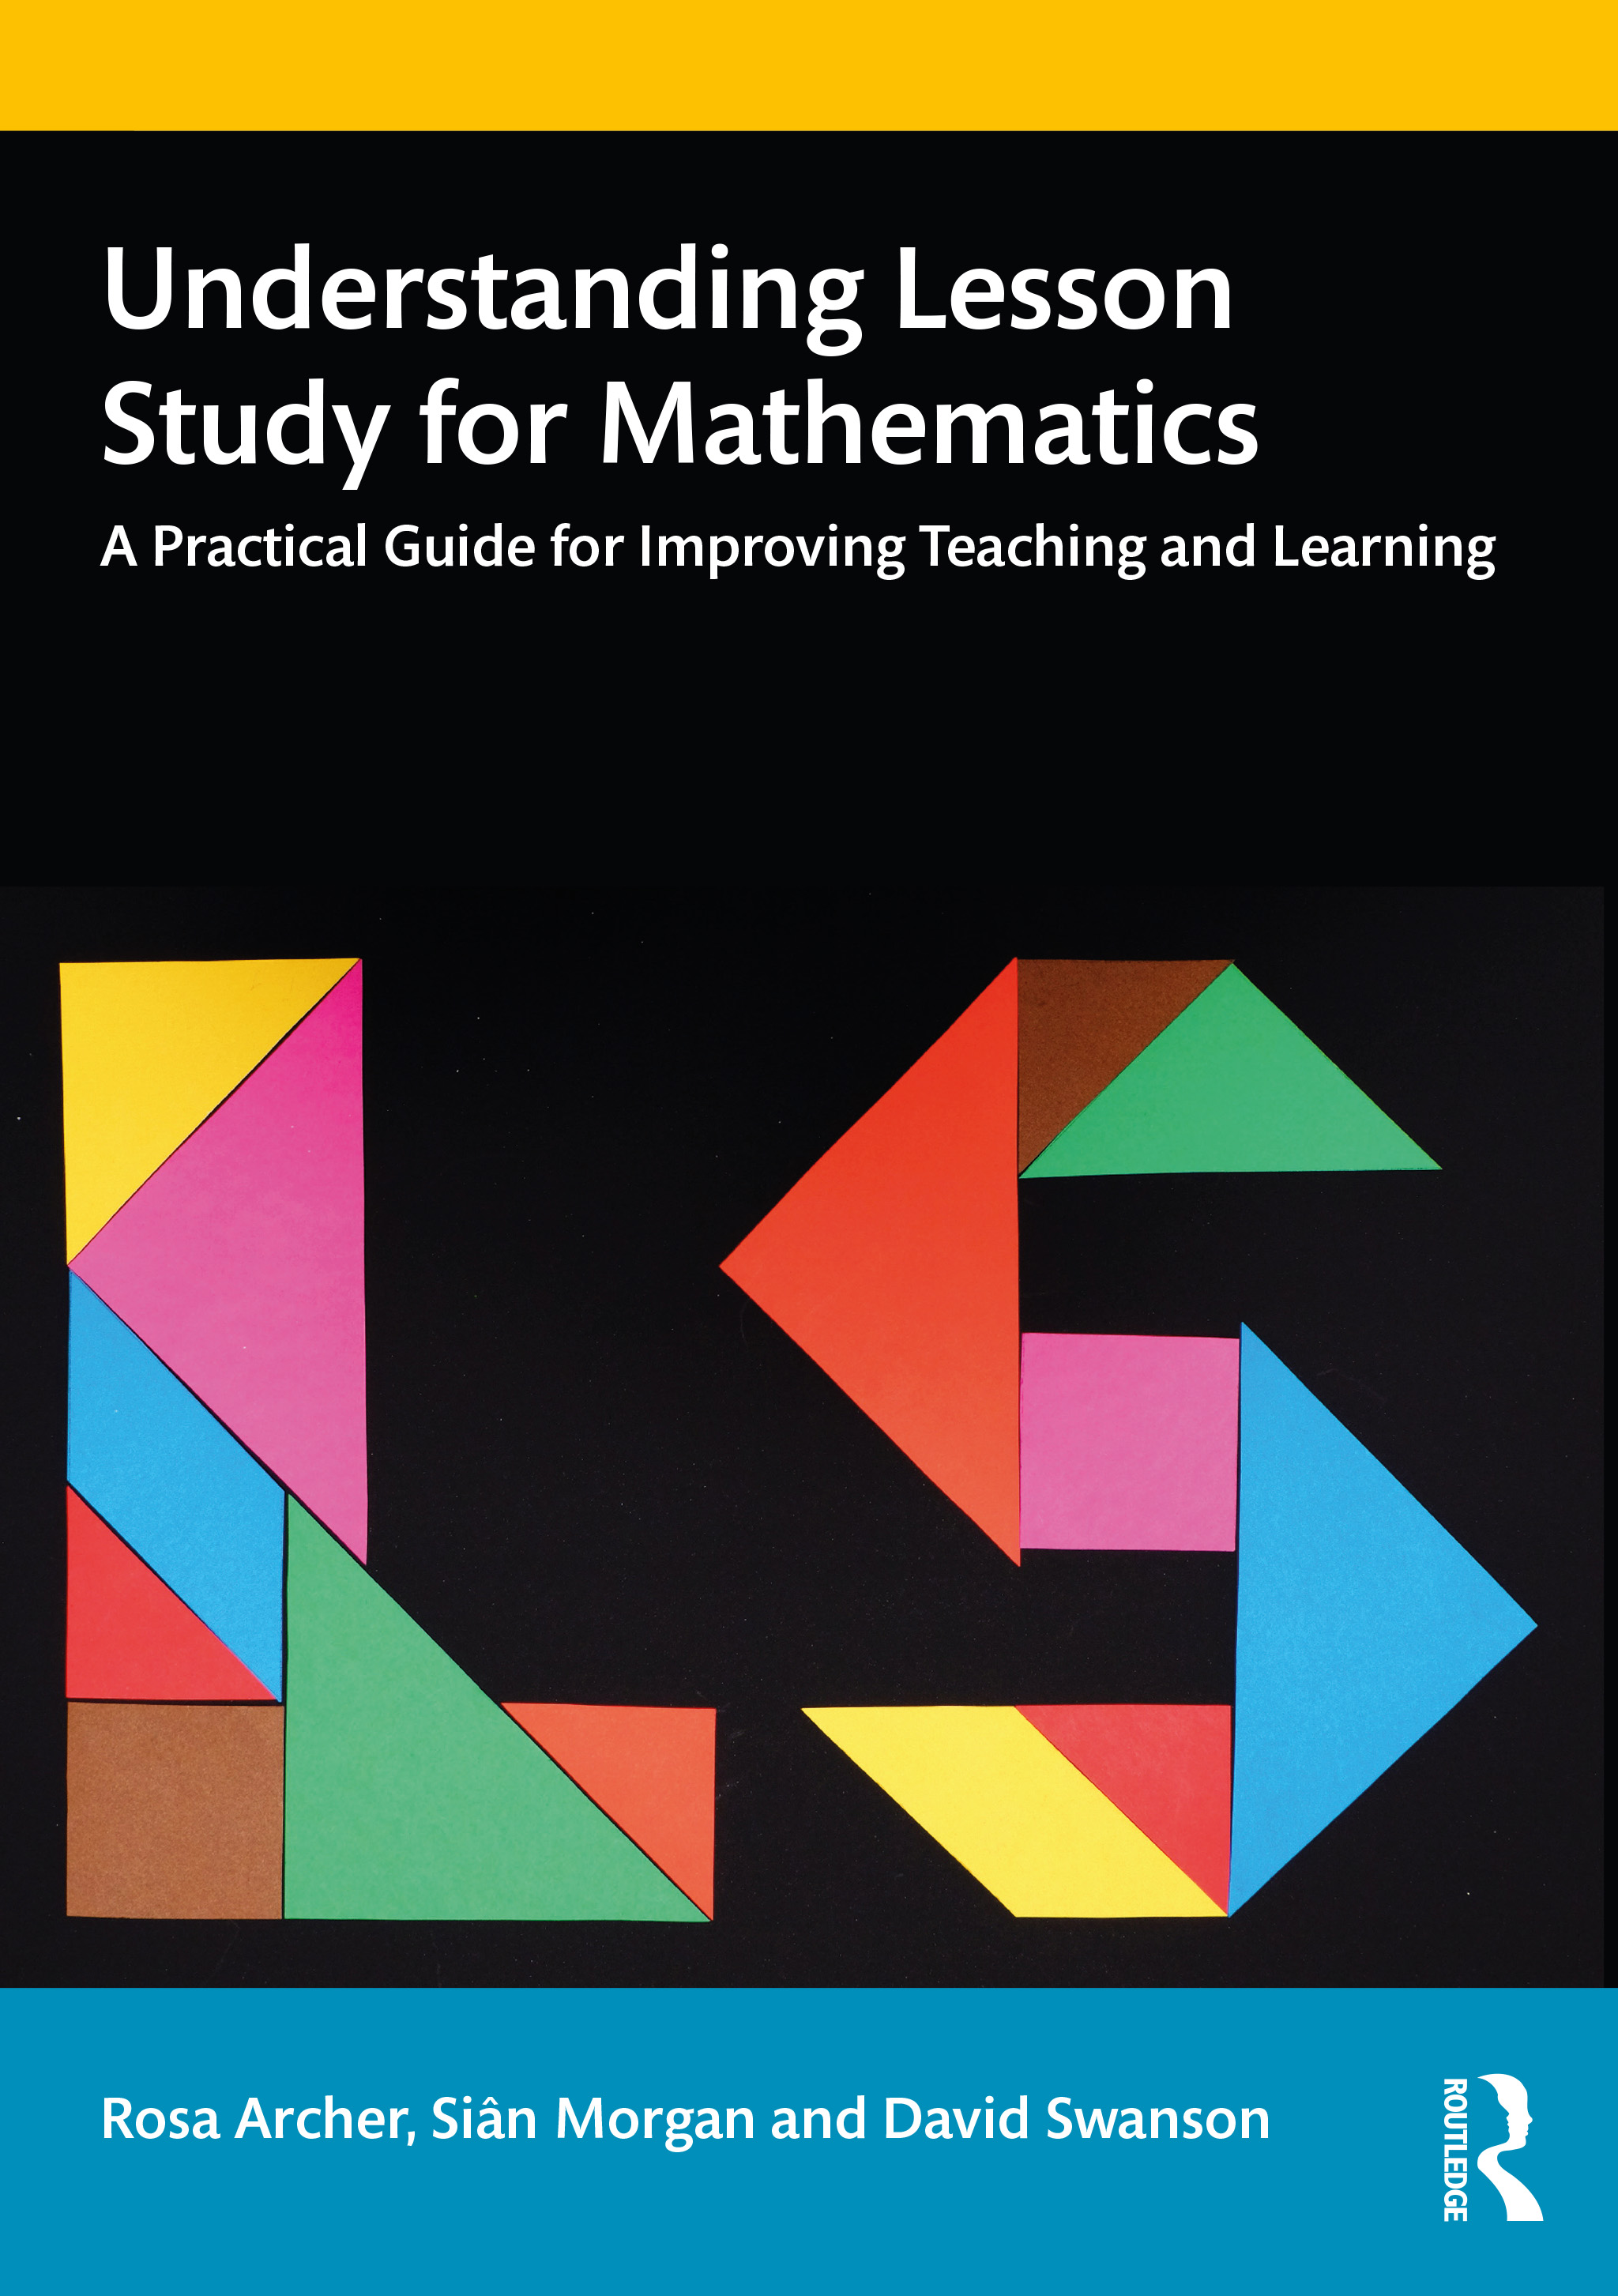 Understanding Lesson Study for Mathematics: A Practical Guide for Improving Teaching and Learning book cover